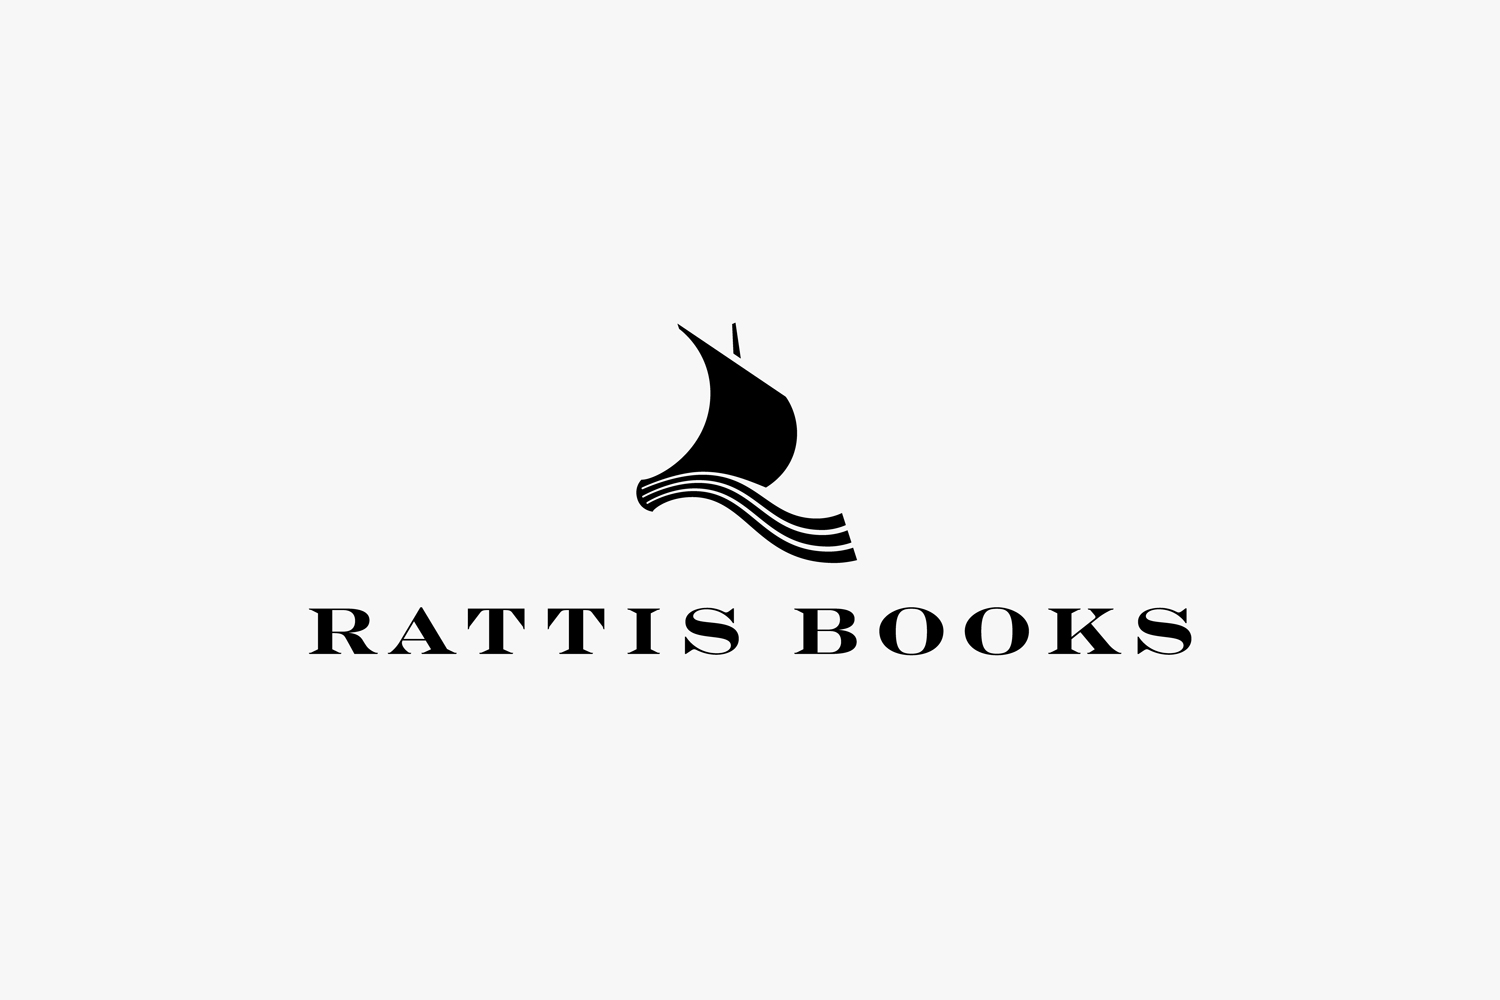 Logo and logotype by London-based design studio, private press and typography workshop The Counter Press for UK independent publisher Rattis Books.